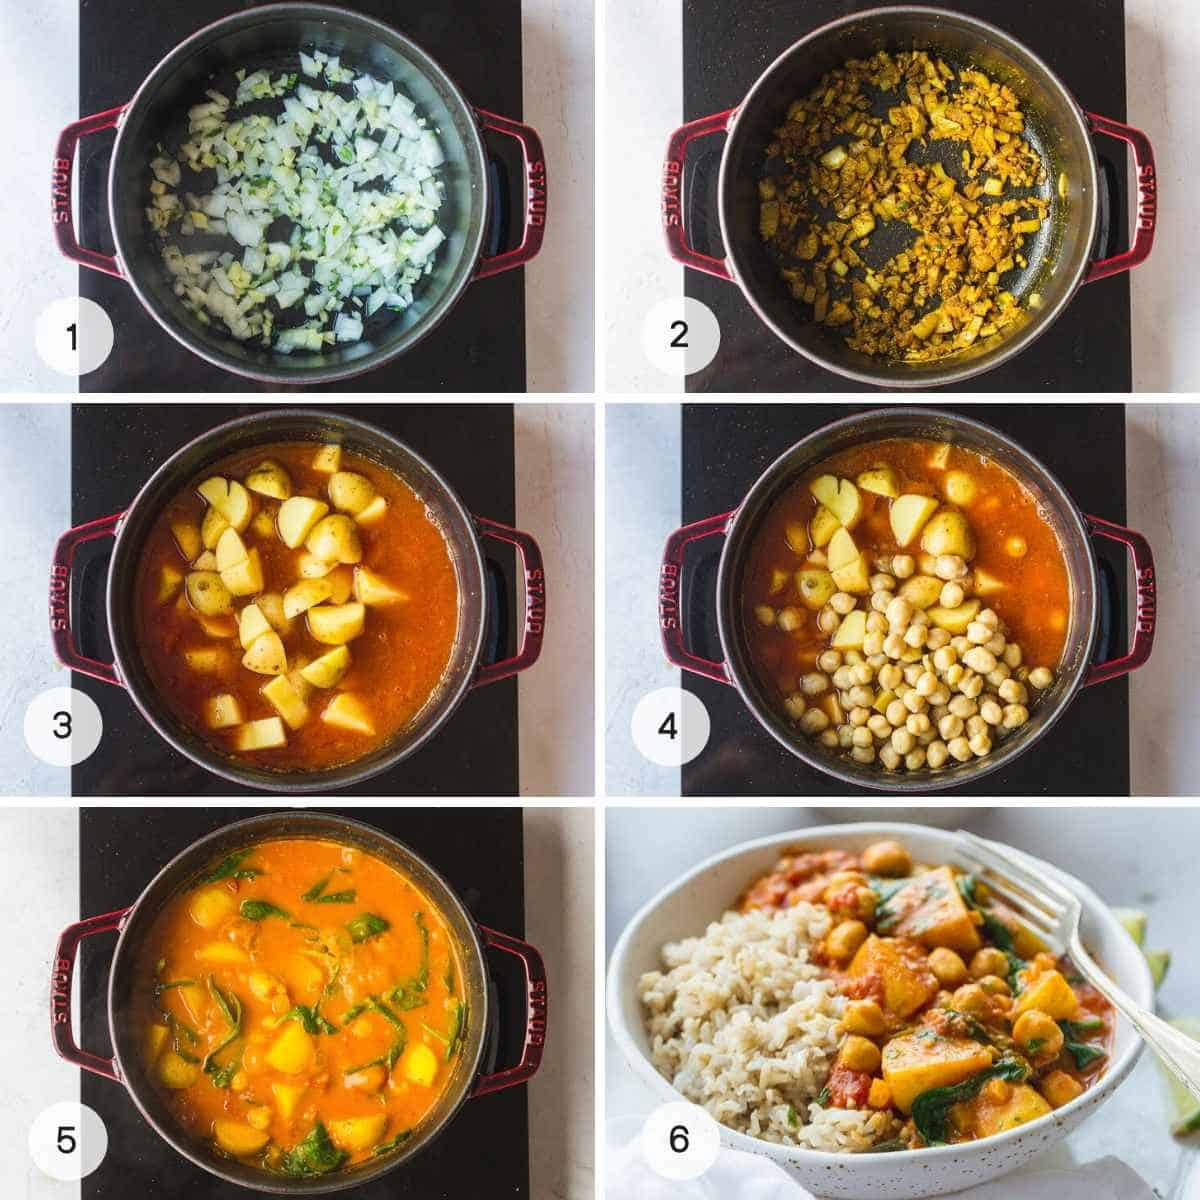 How to Make Chickpea and Potato Curry